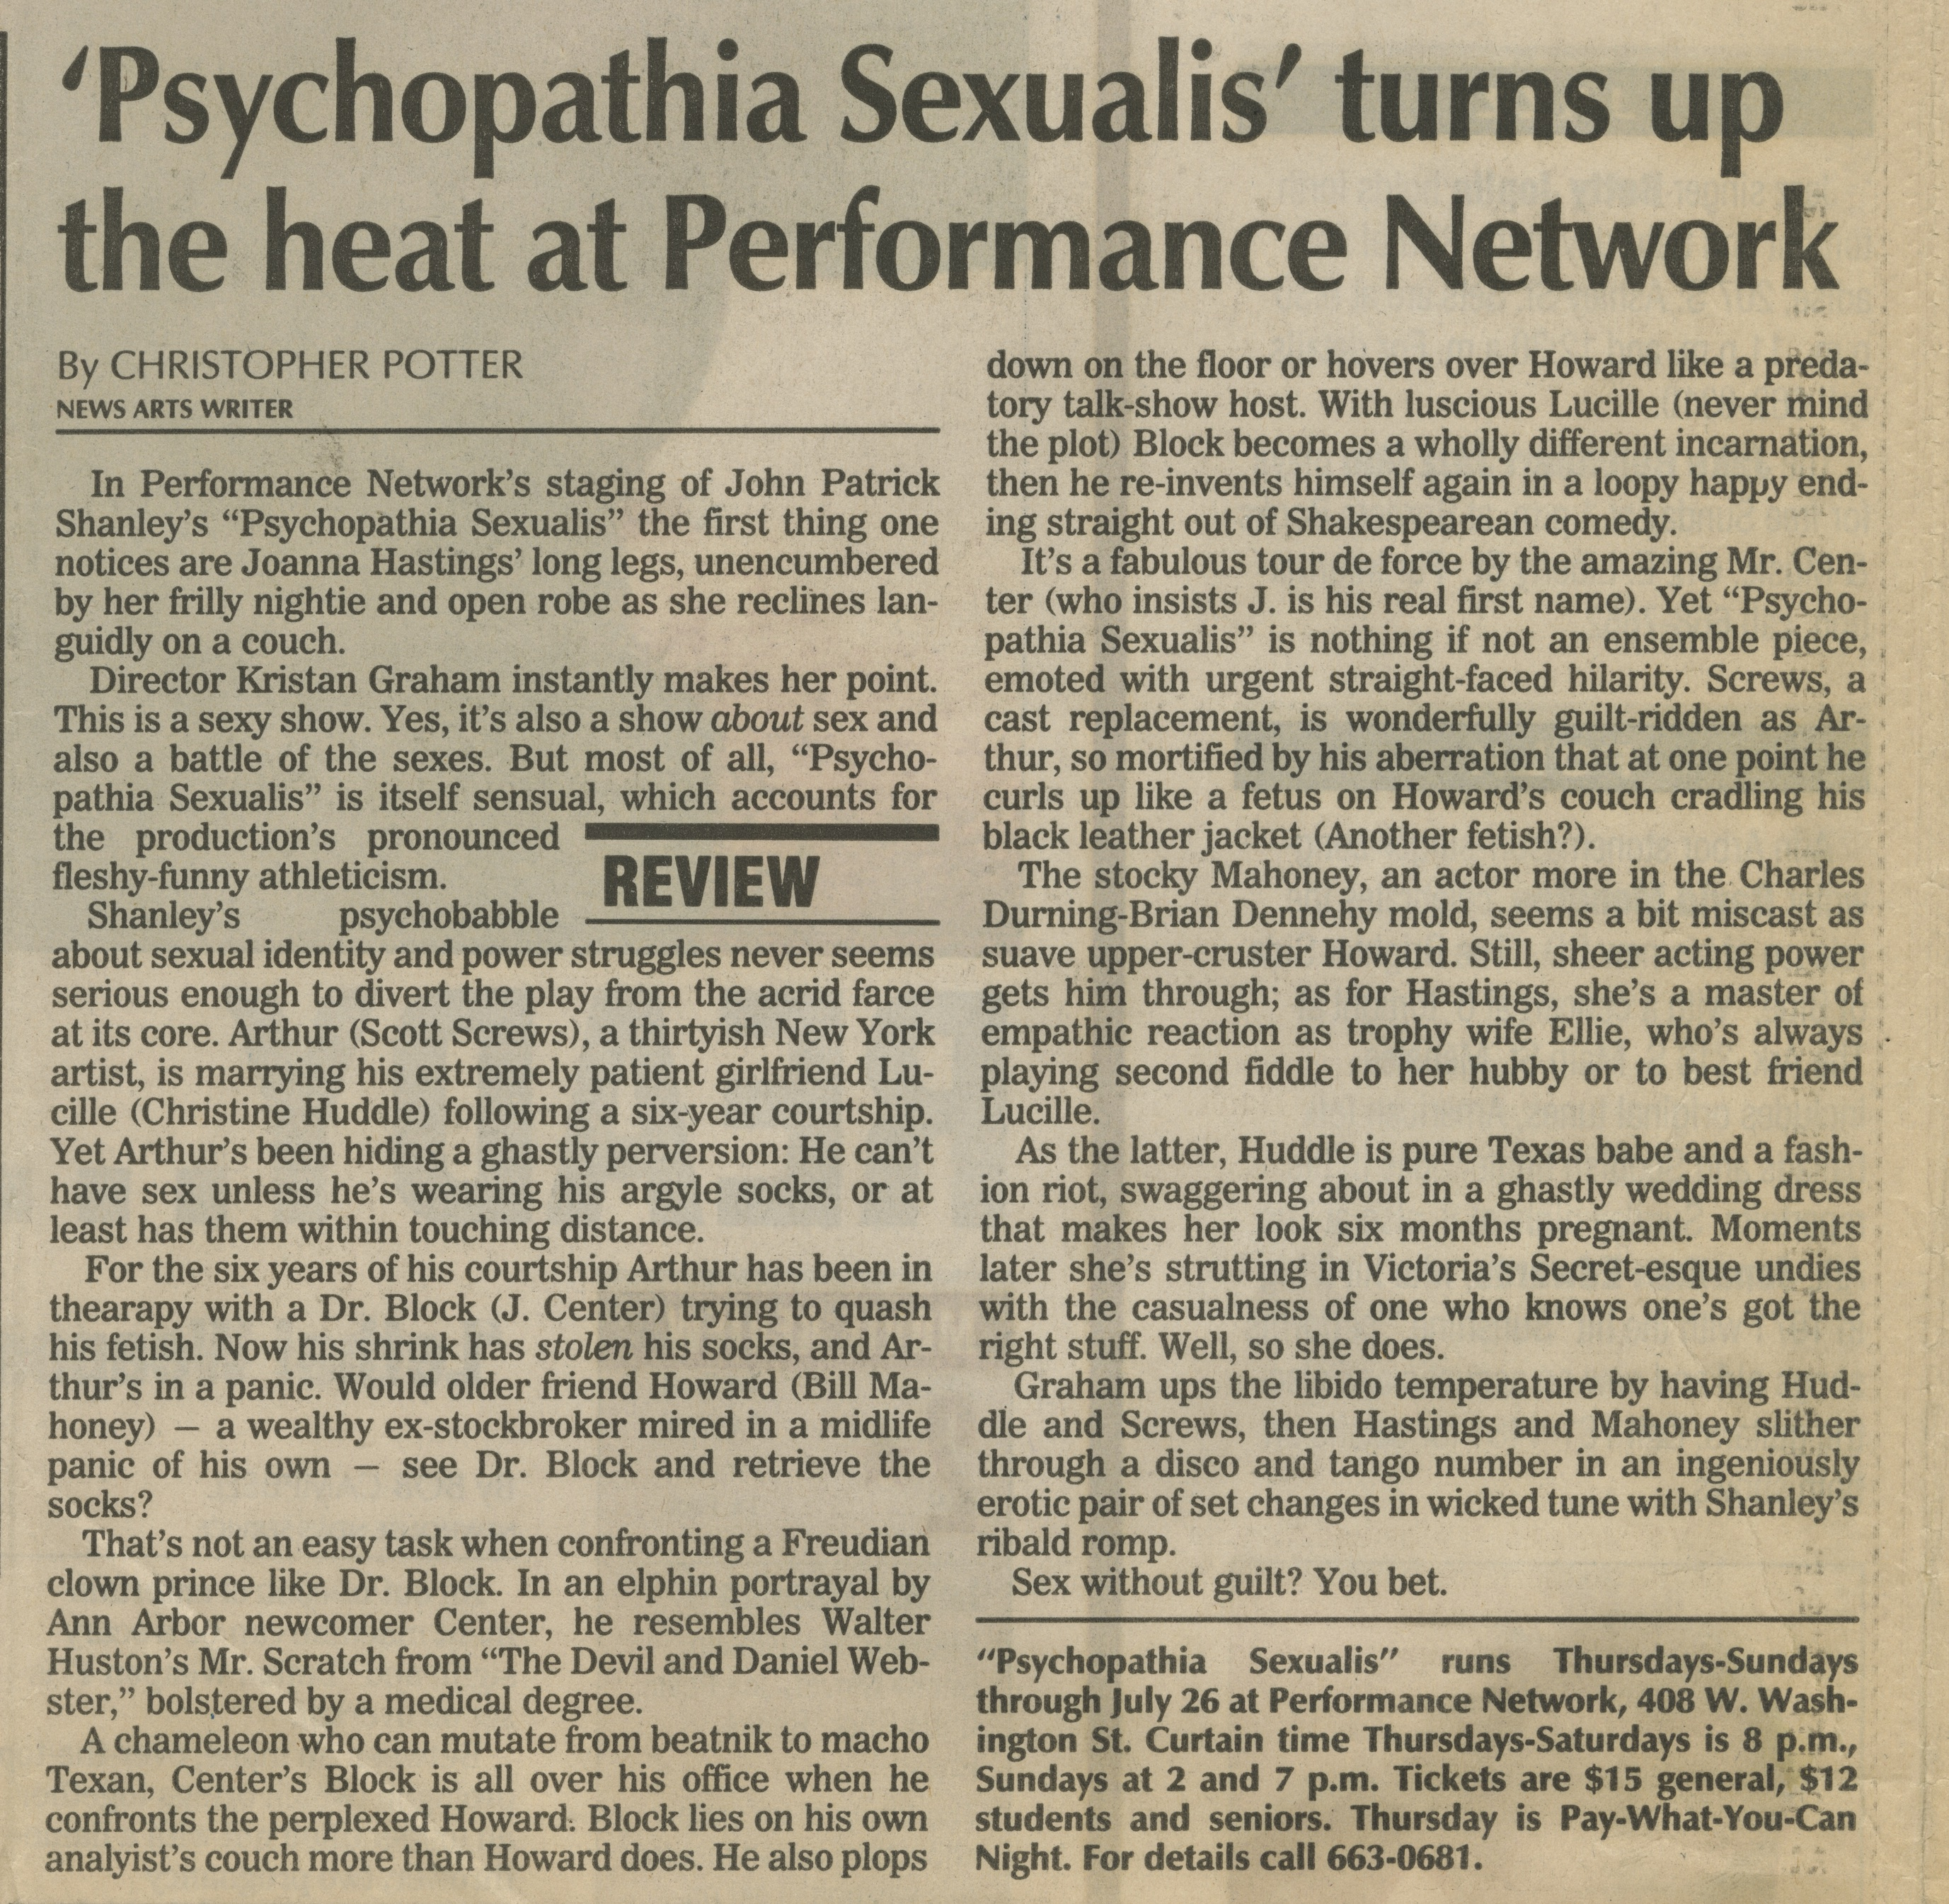 'Psychopathia Sexualis' turns up the heat at Performance Network image